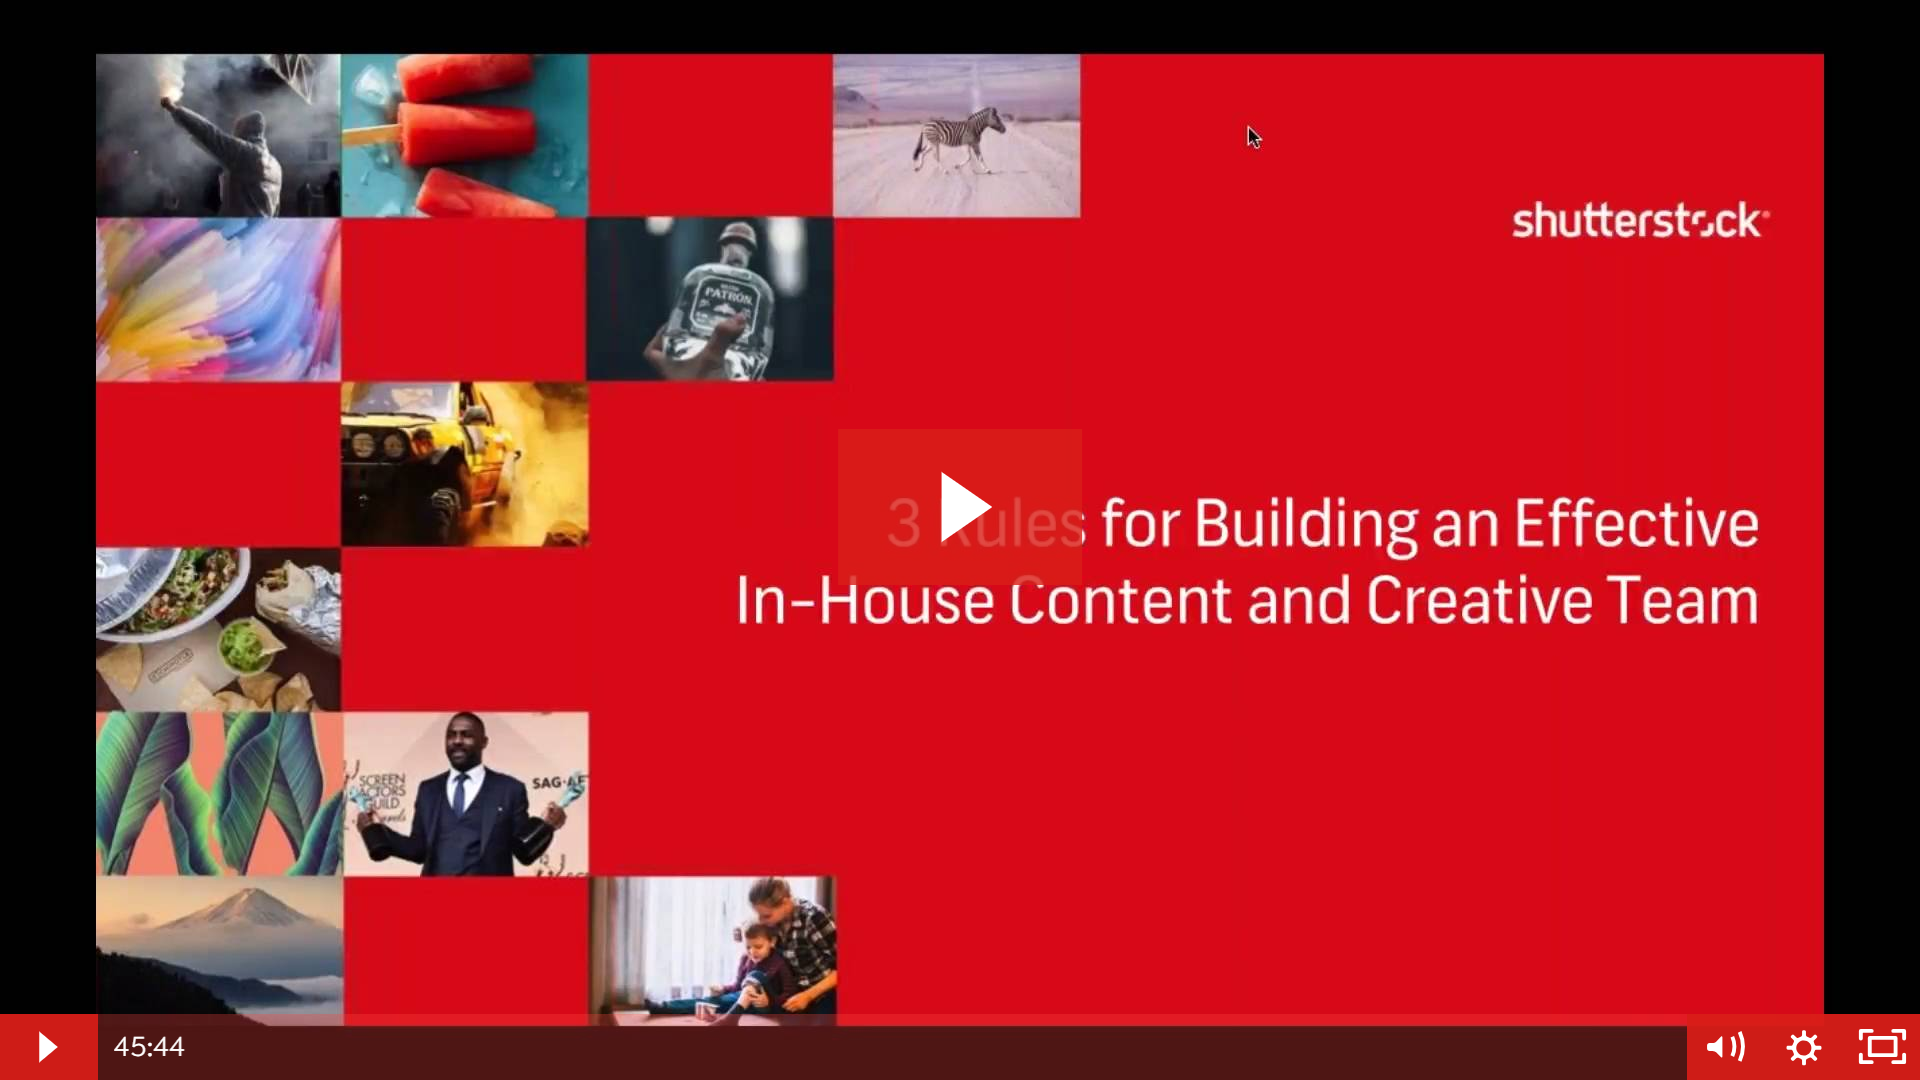 3 Rules for Building an Effective In House Content and Creative Team Webinar cover - 3 Rules for Building an Effective In-House Content and Creative Team